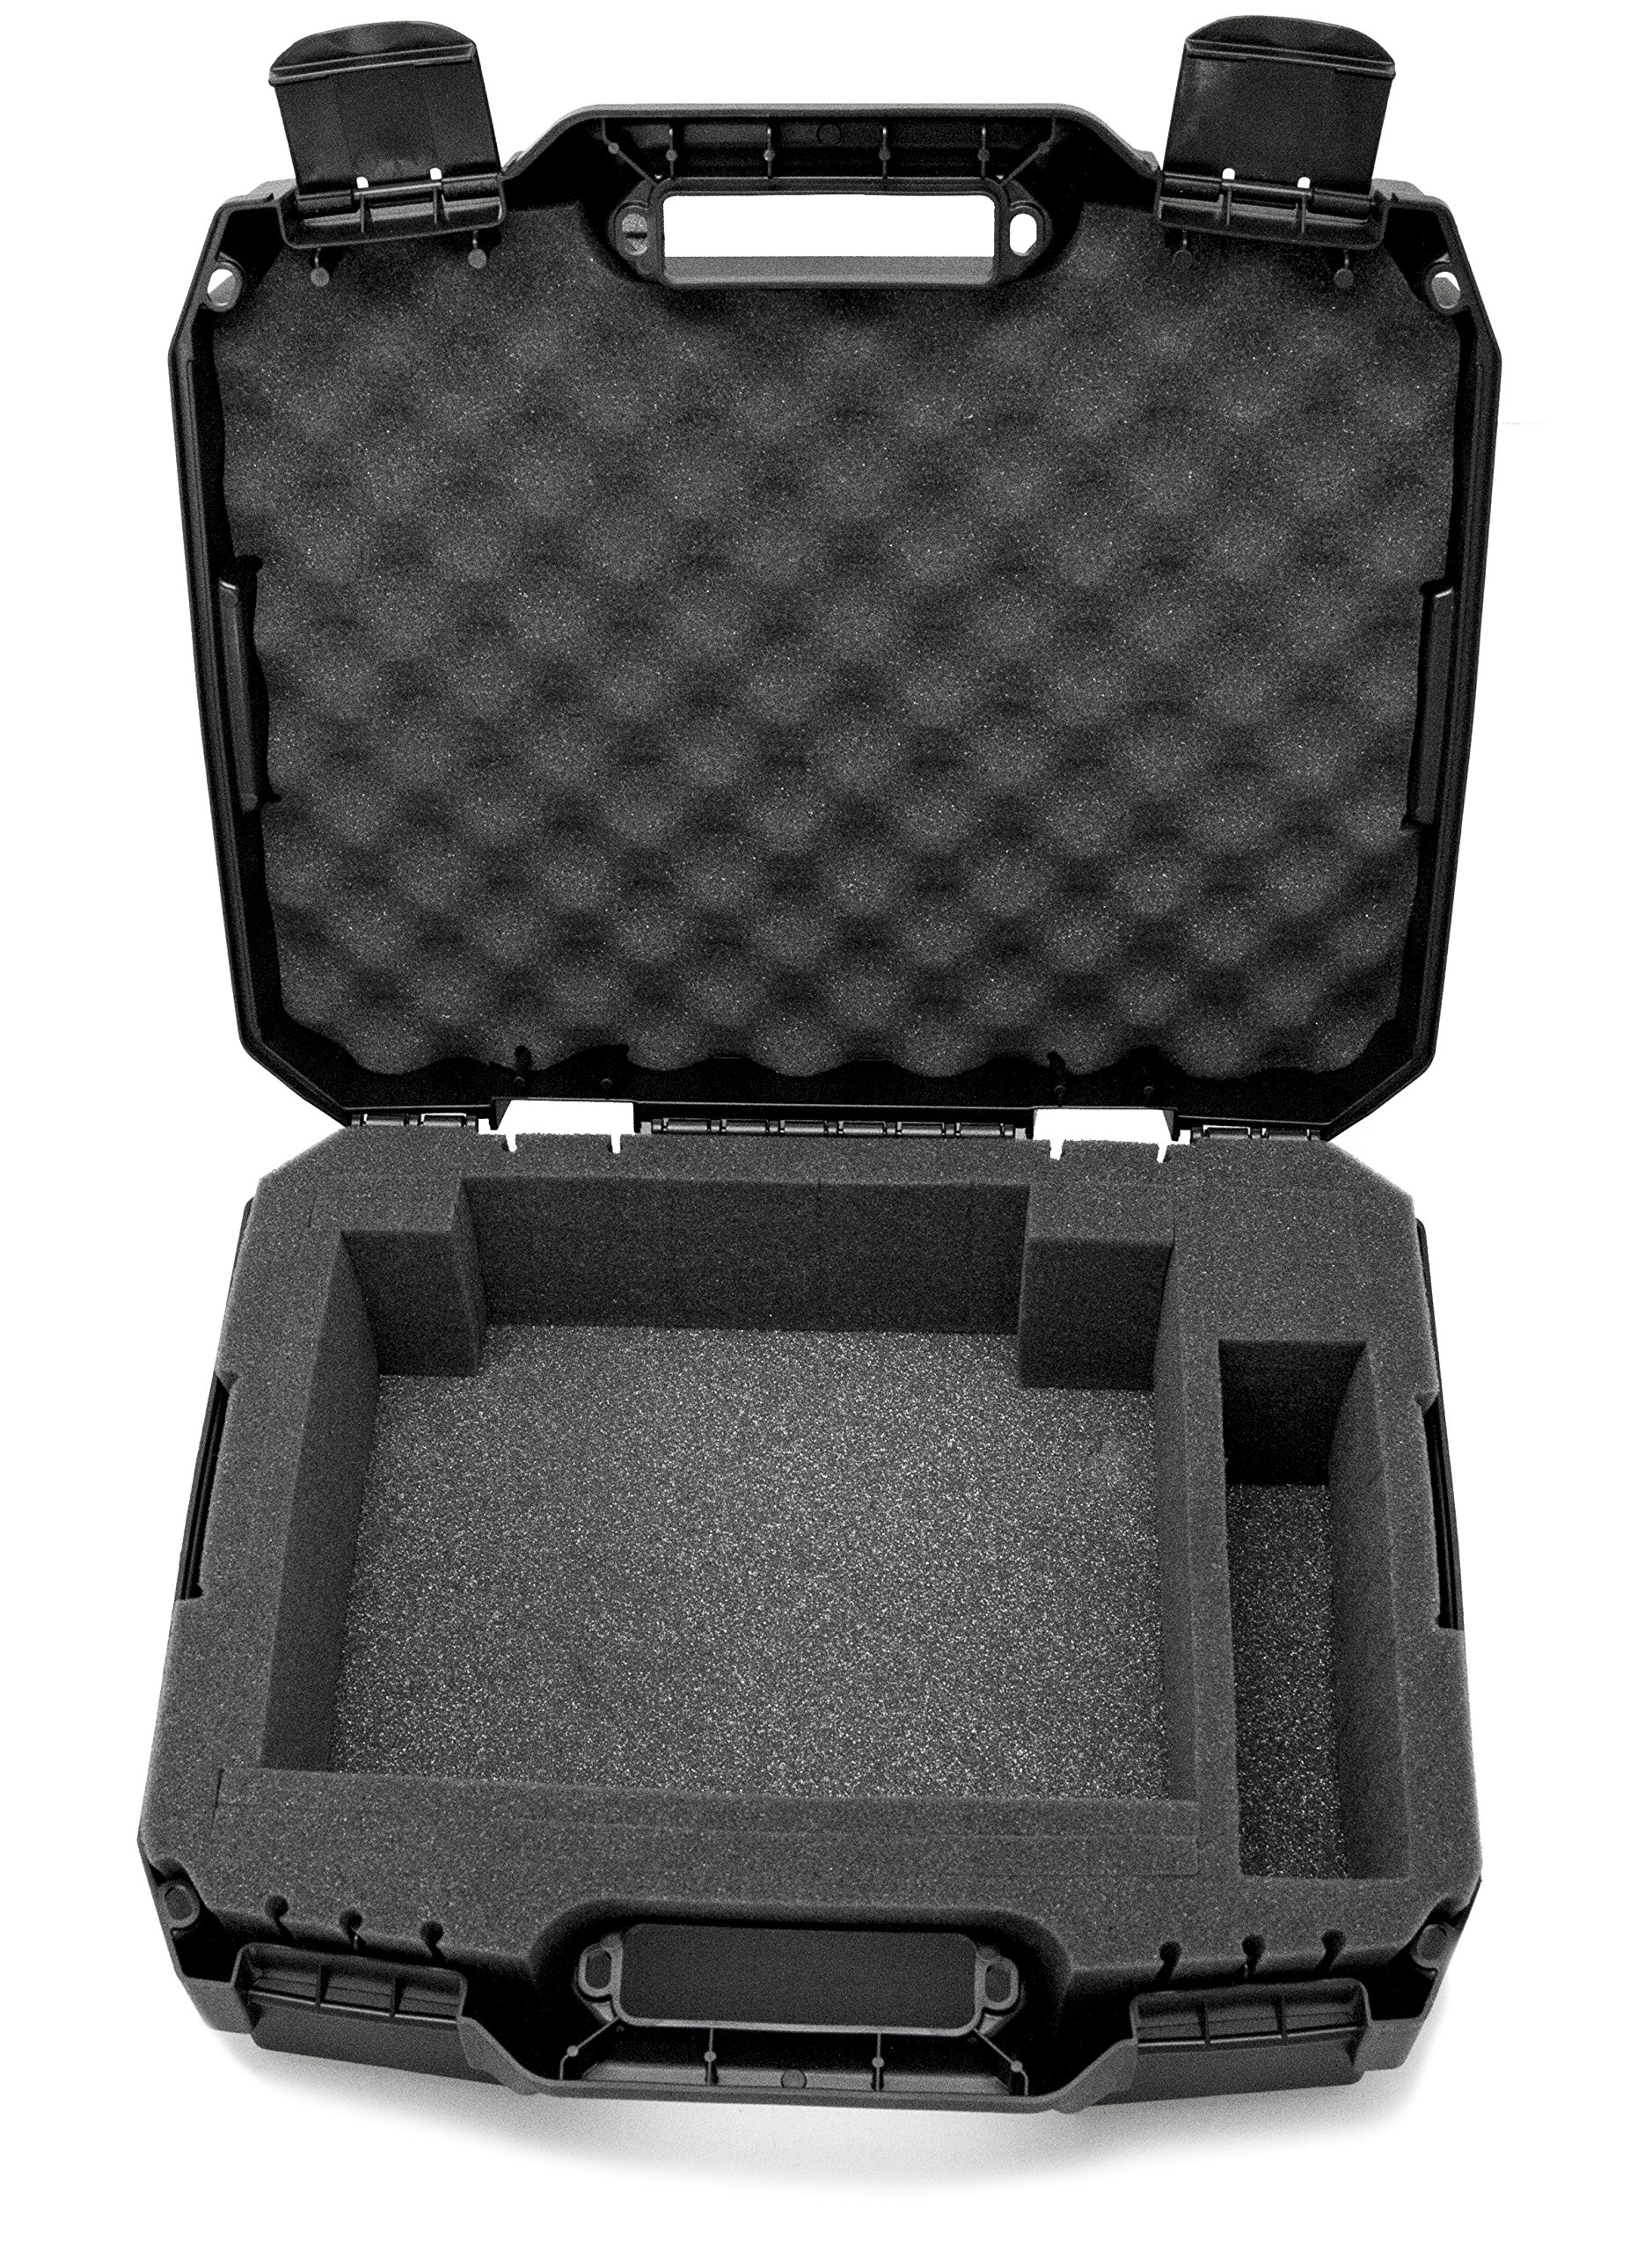 Casematix Projector Travel Case Compatible with Viewsonic PA503S , PA503W , PA503X , PG703W , PG703 Projectors , Hdmi Cable and Remote by CASEMATIX